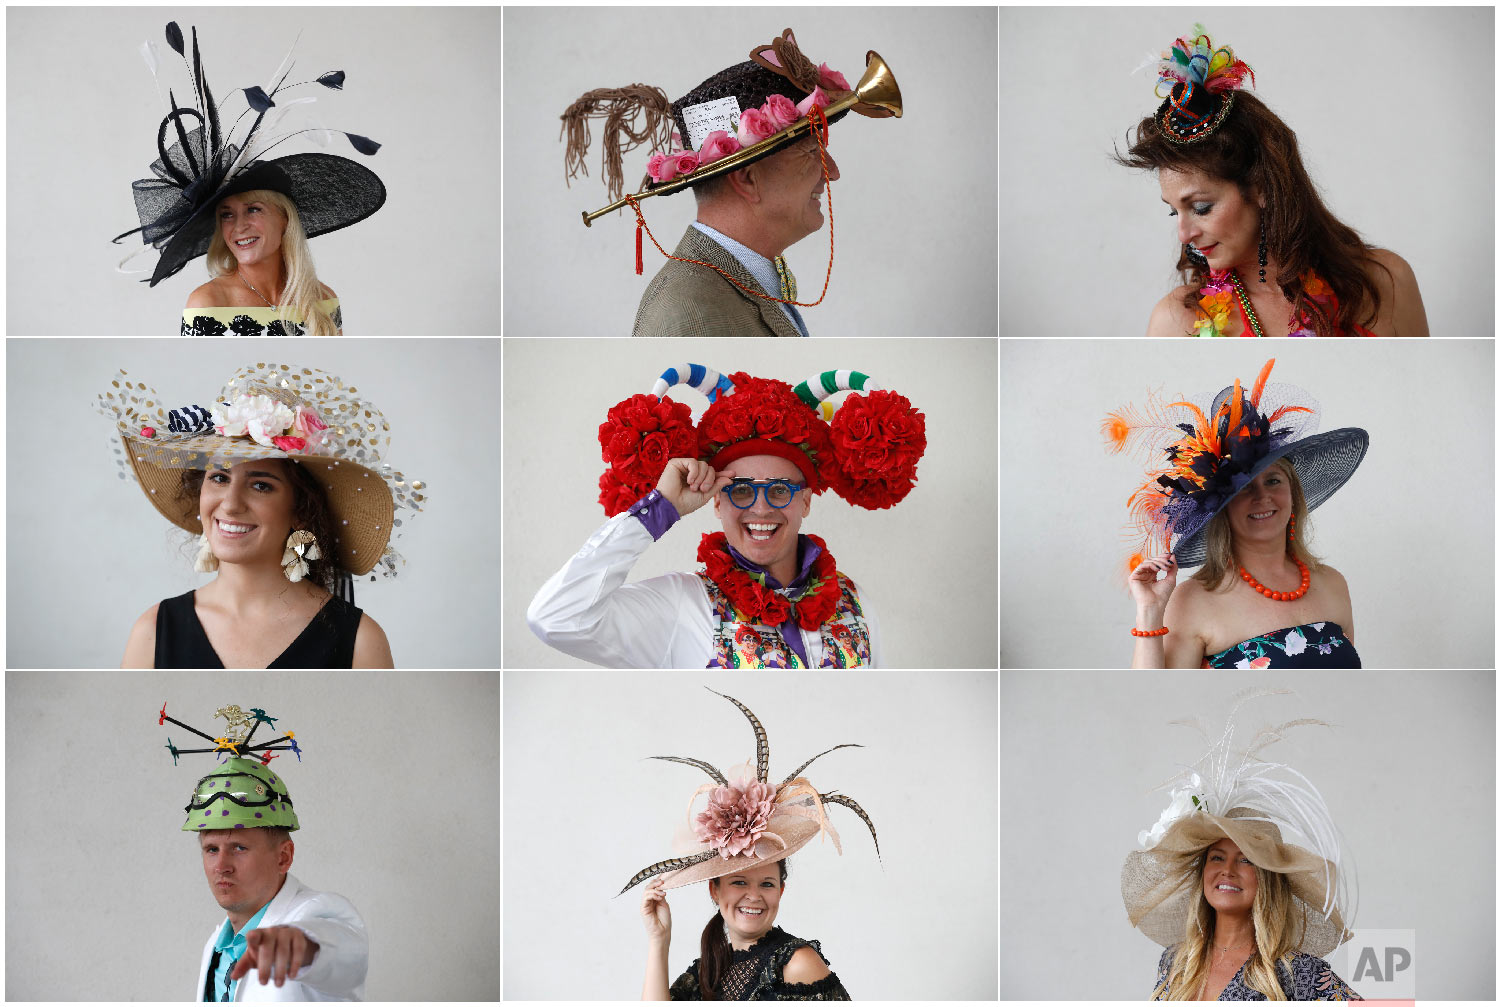 Attendees pose for a photo with their hats before the 144th running of the Kentucky Derby horse race at Churchill Downs Saturday, May 5, 2018, in Louisville, Ky. (AP Photo/John Minchillo)